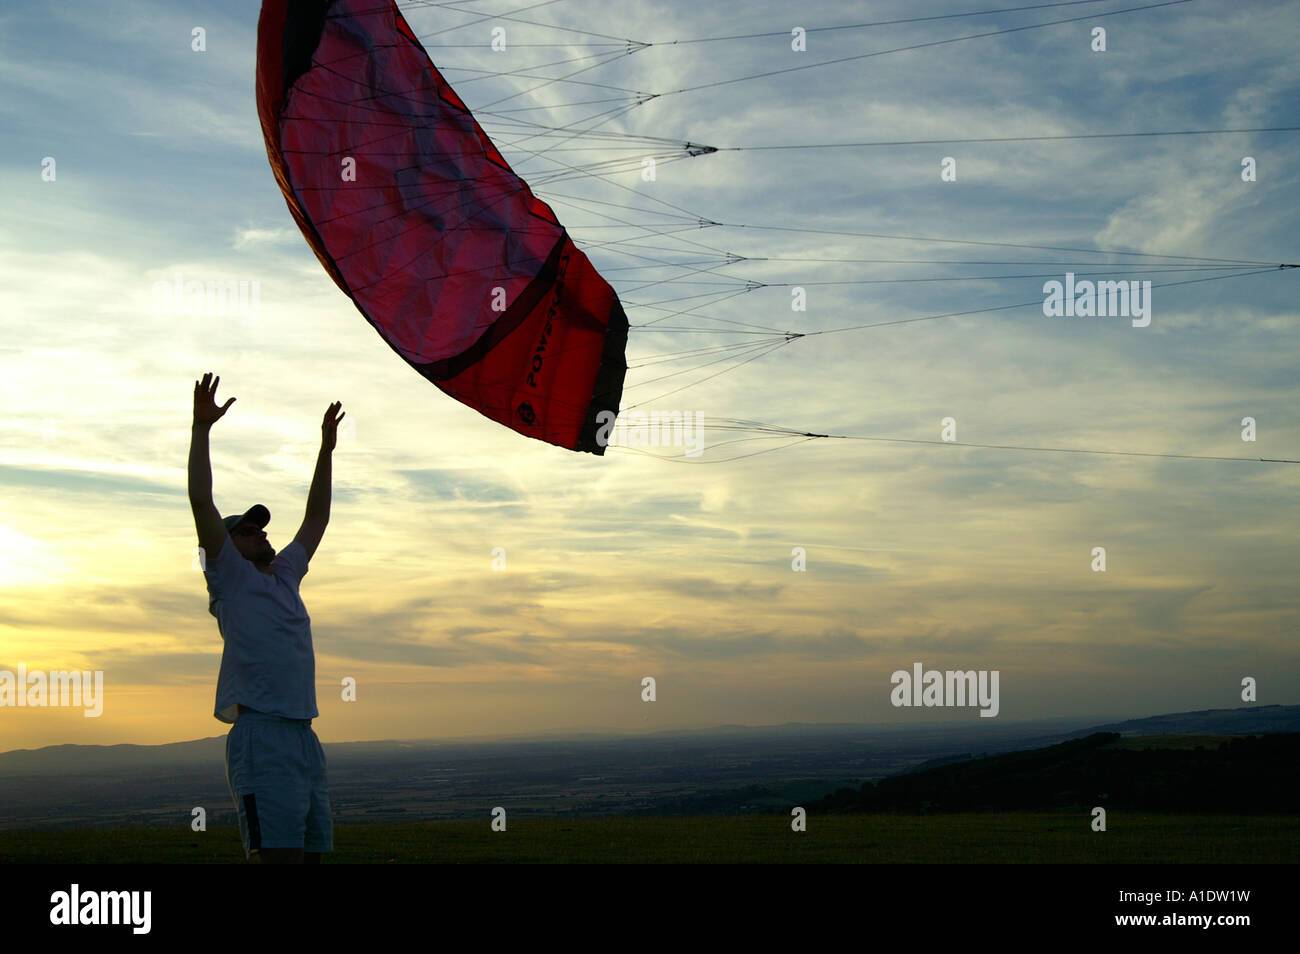 Man teenage boy starting parachute powerkite kite on meadow hill over evening colourful sky outdoors - Stock Image